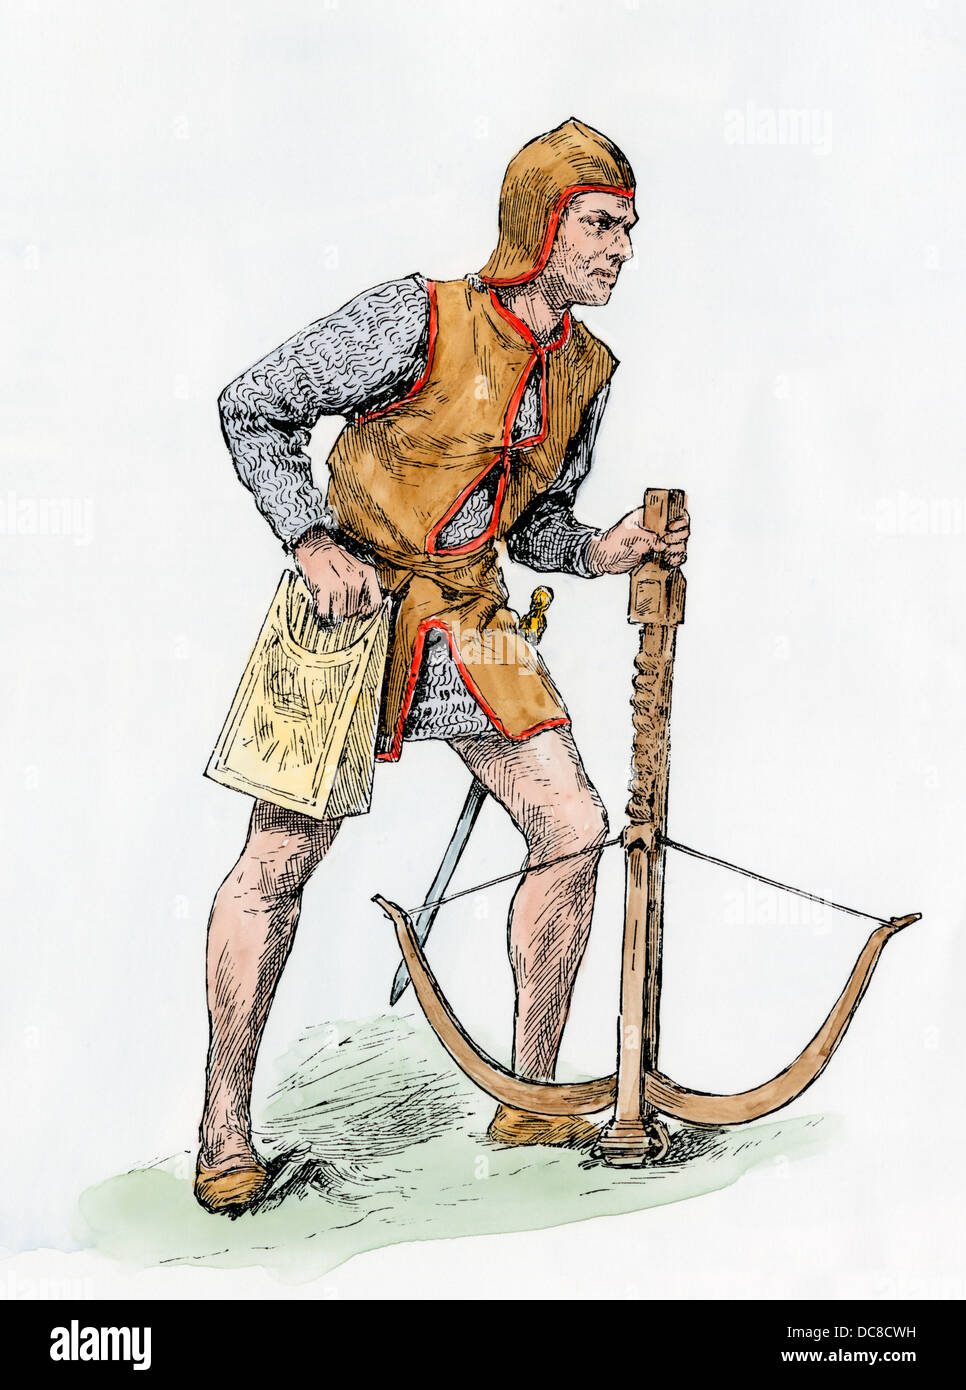 Archer with a crossbow in the Middle Ages. Hand-colored woodcut - Stock Image